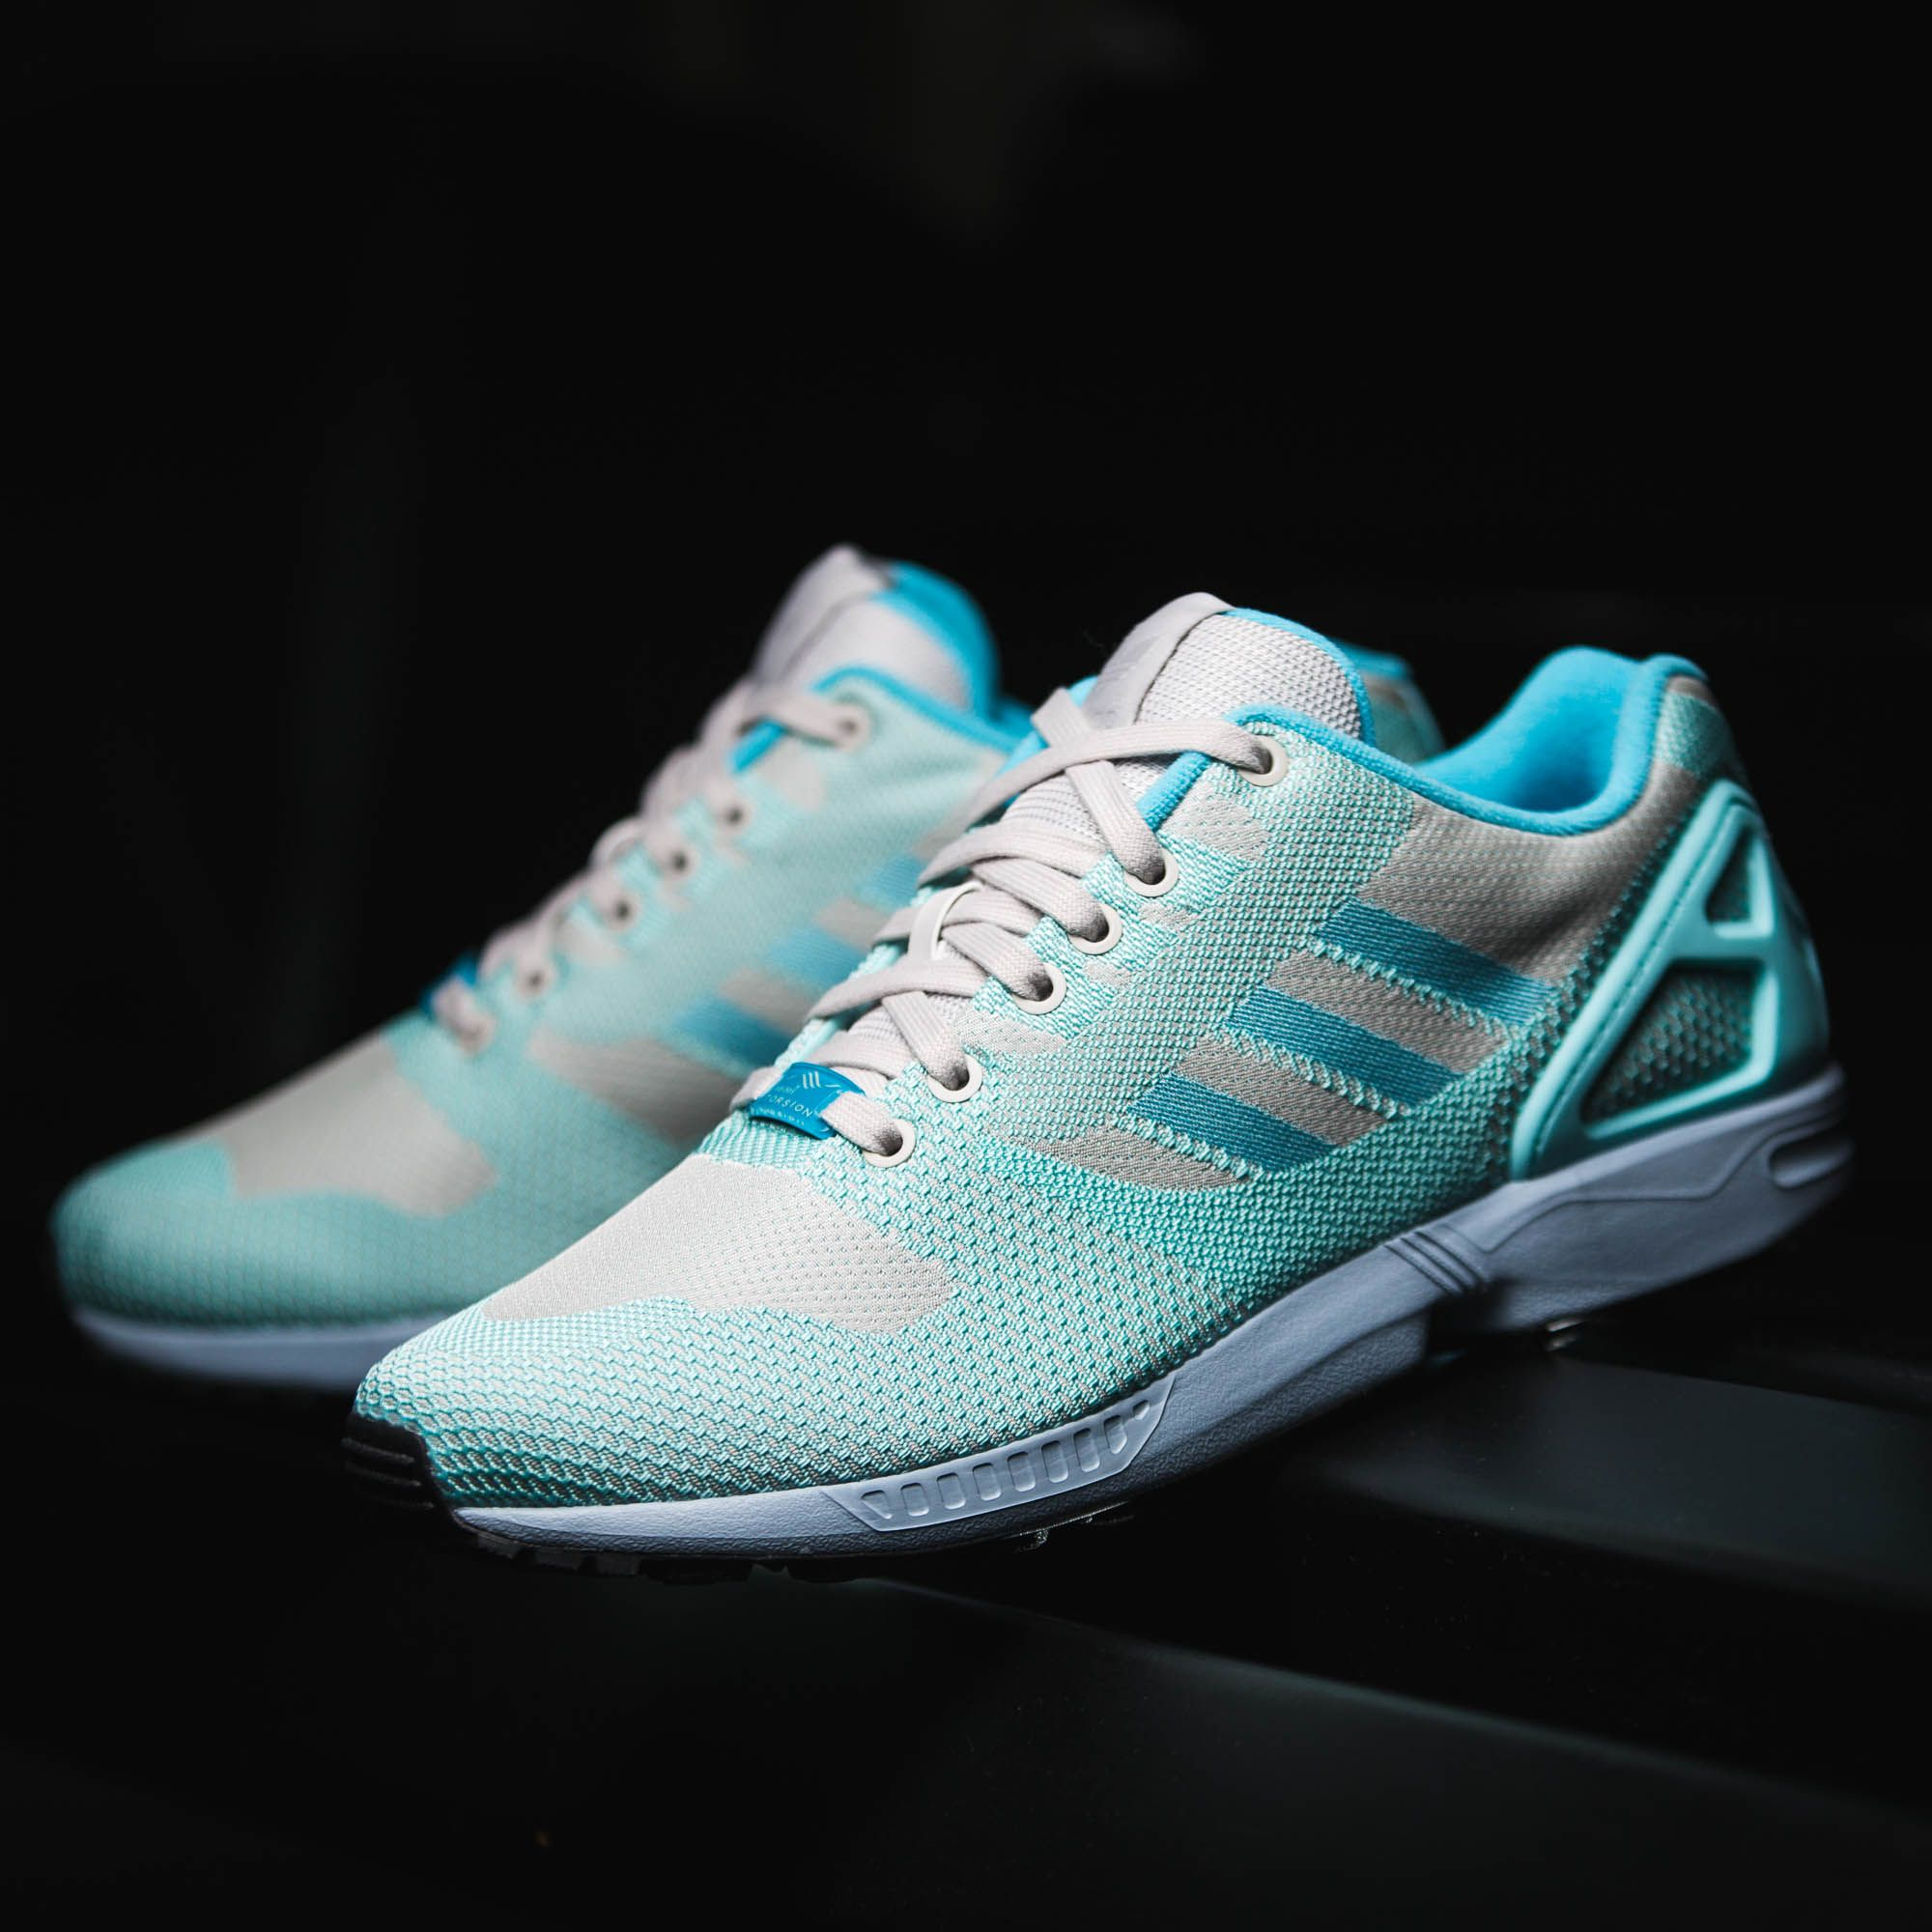 Adidas Originals Zx Flux EU 42 2 3